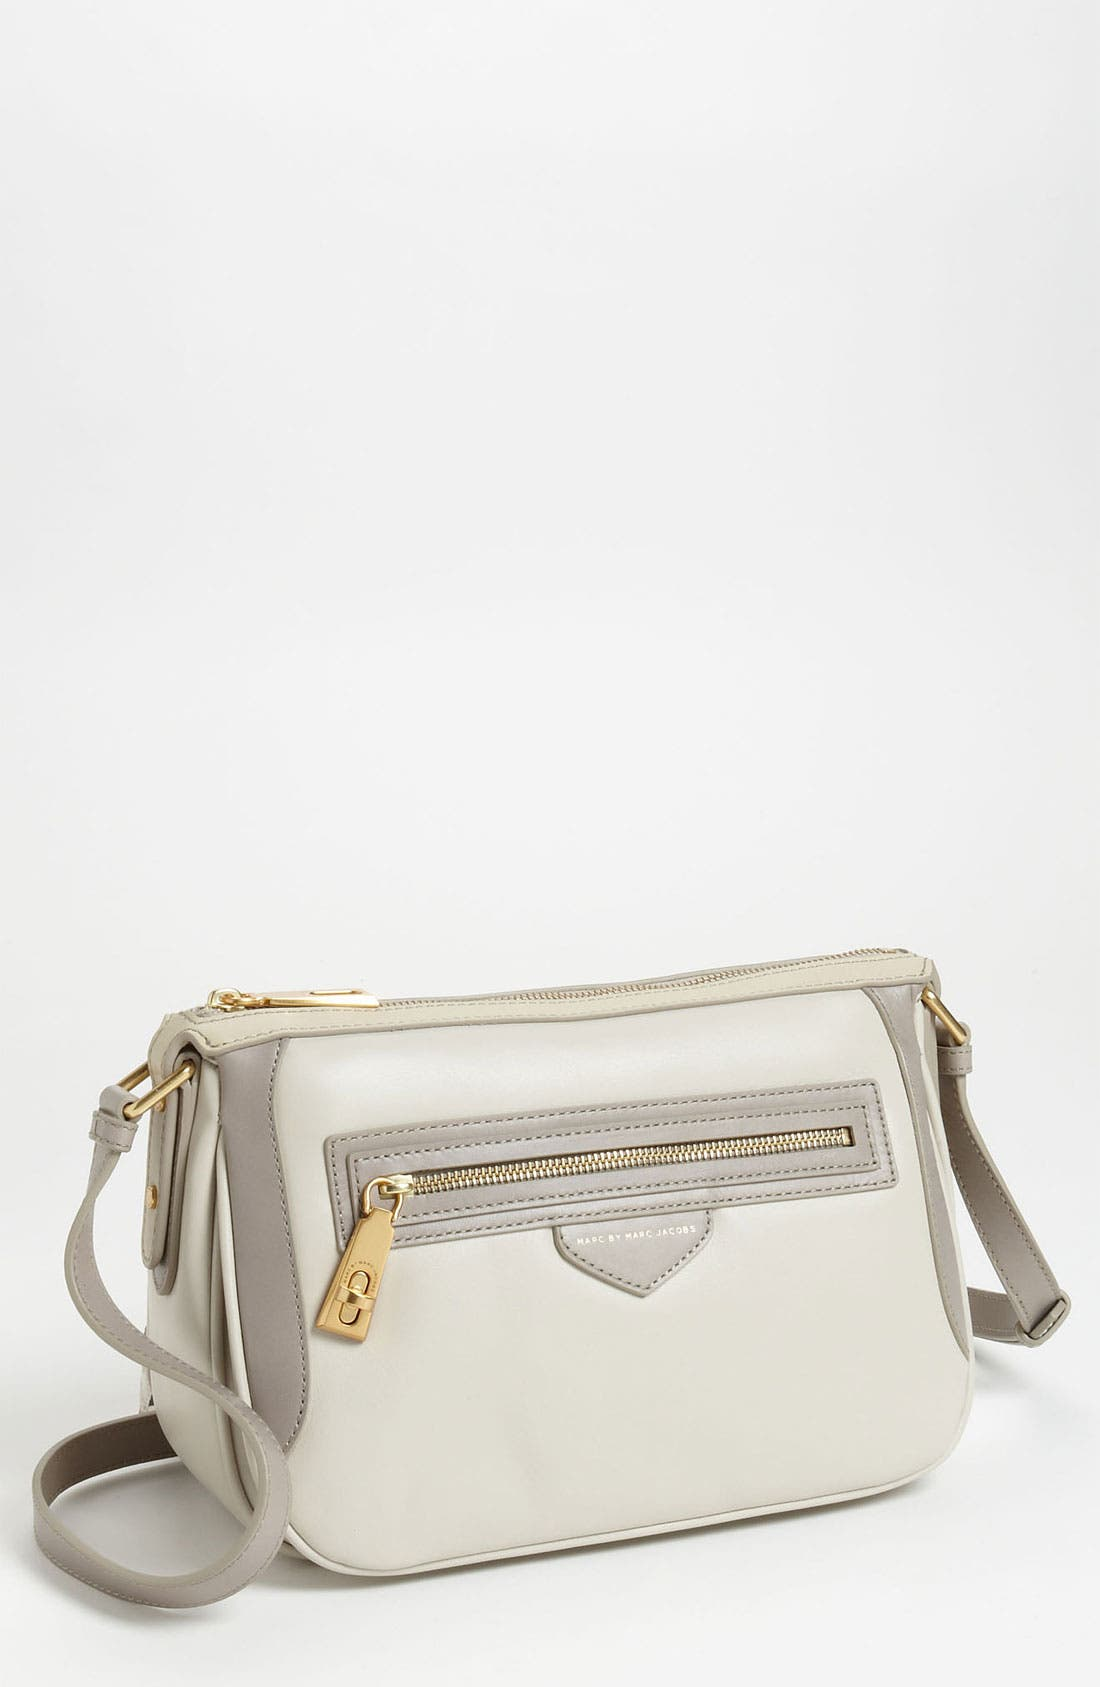 Alternate Image 1 Selected - MARC BY MARC JACOBS 'The Ziplocker Sophie - Mini' Leather Crossbody Bag